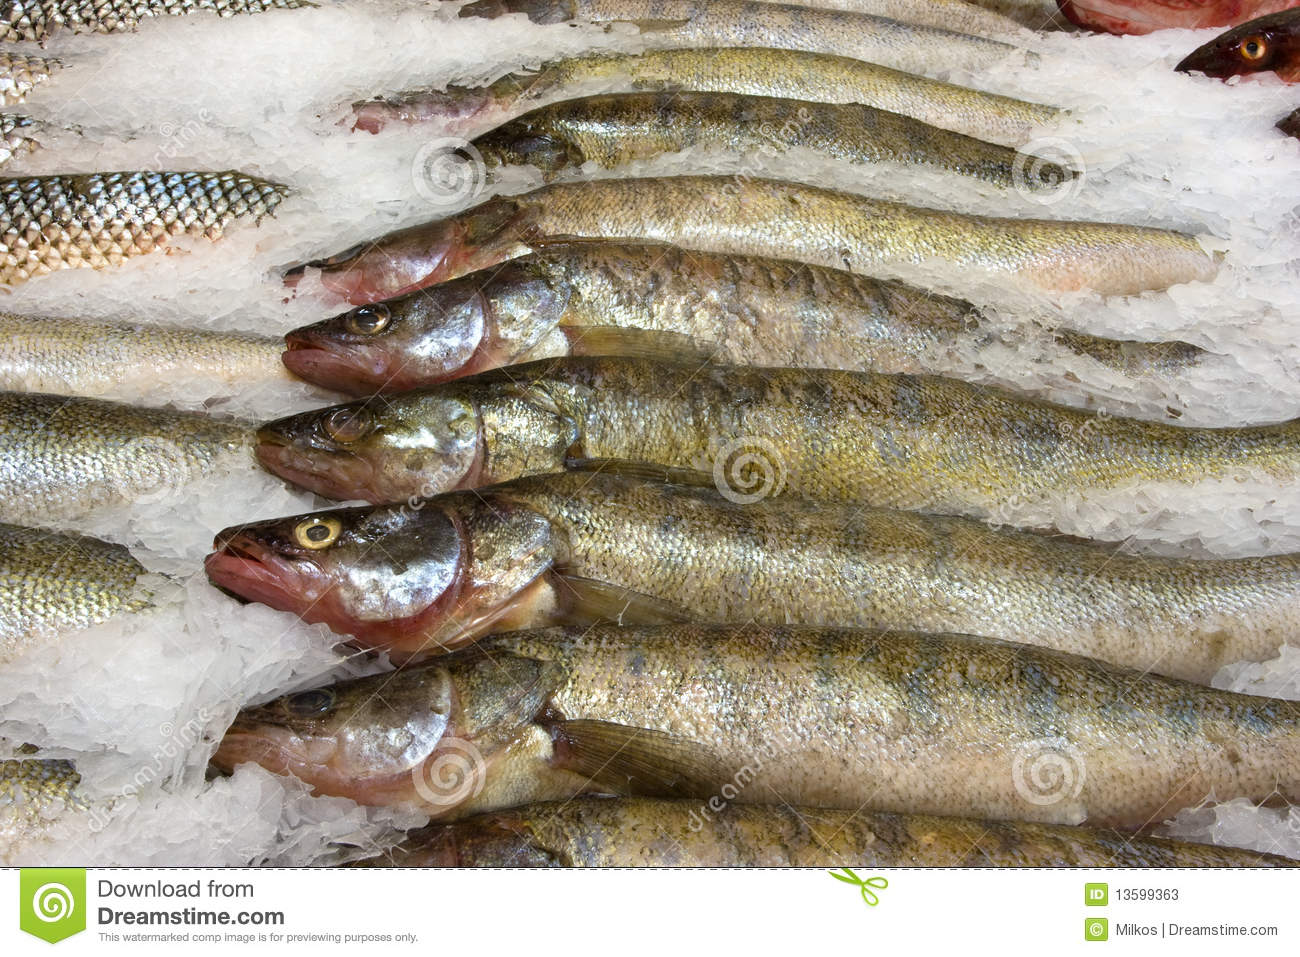 [Image: fresh-raw-fish-supermarket-13599363.jpg]